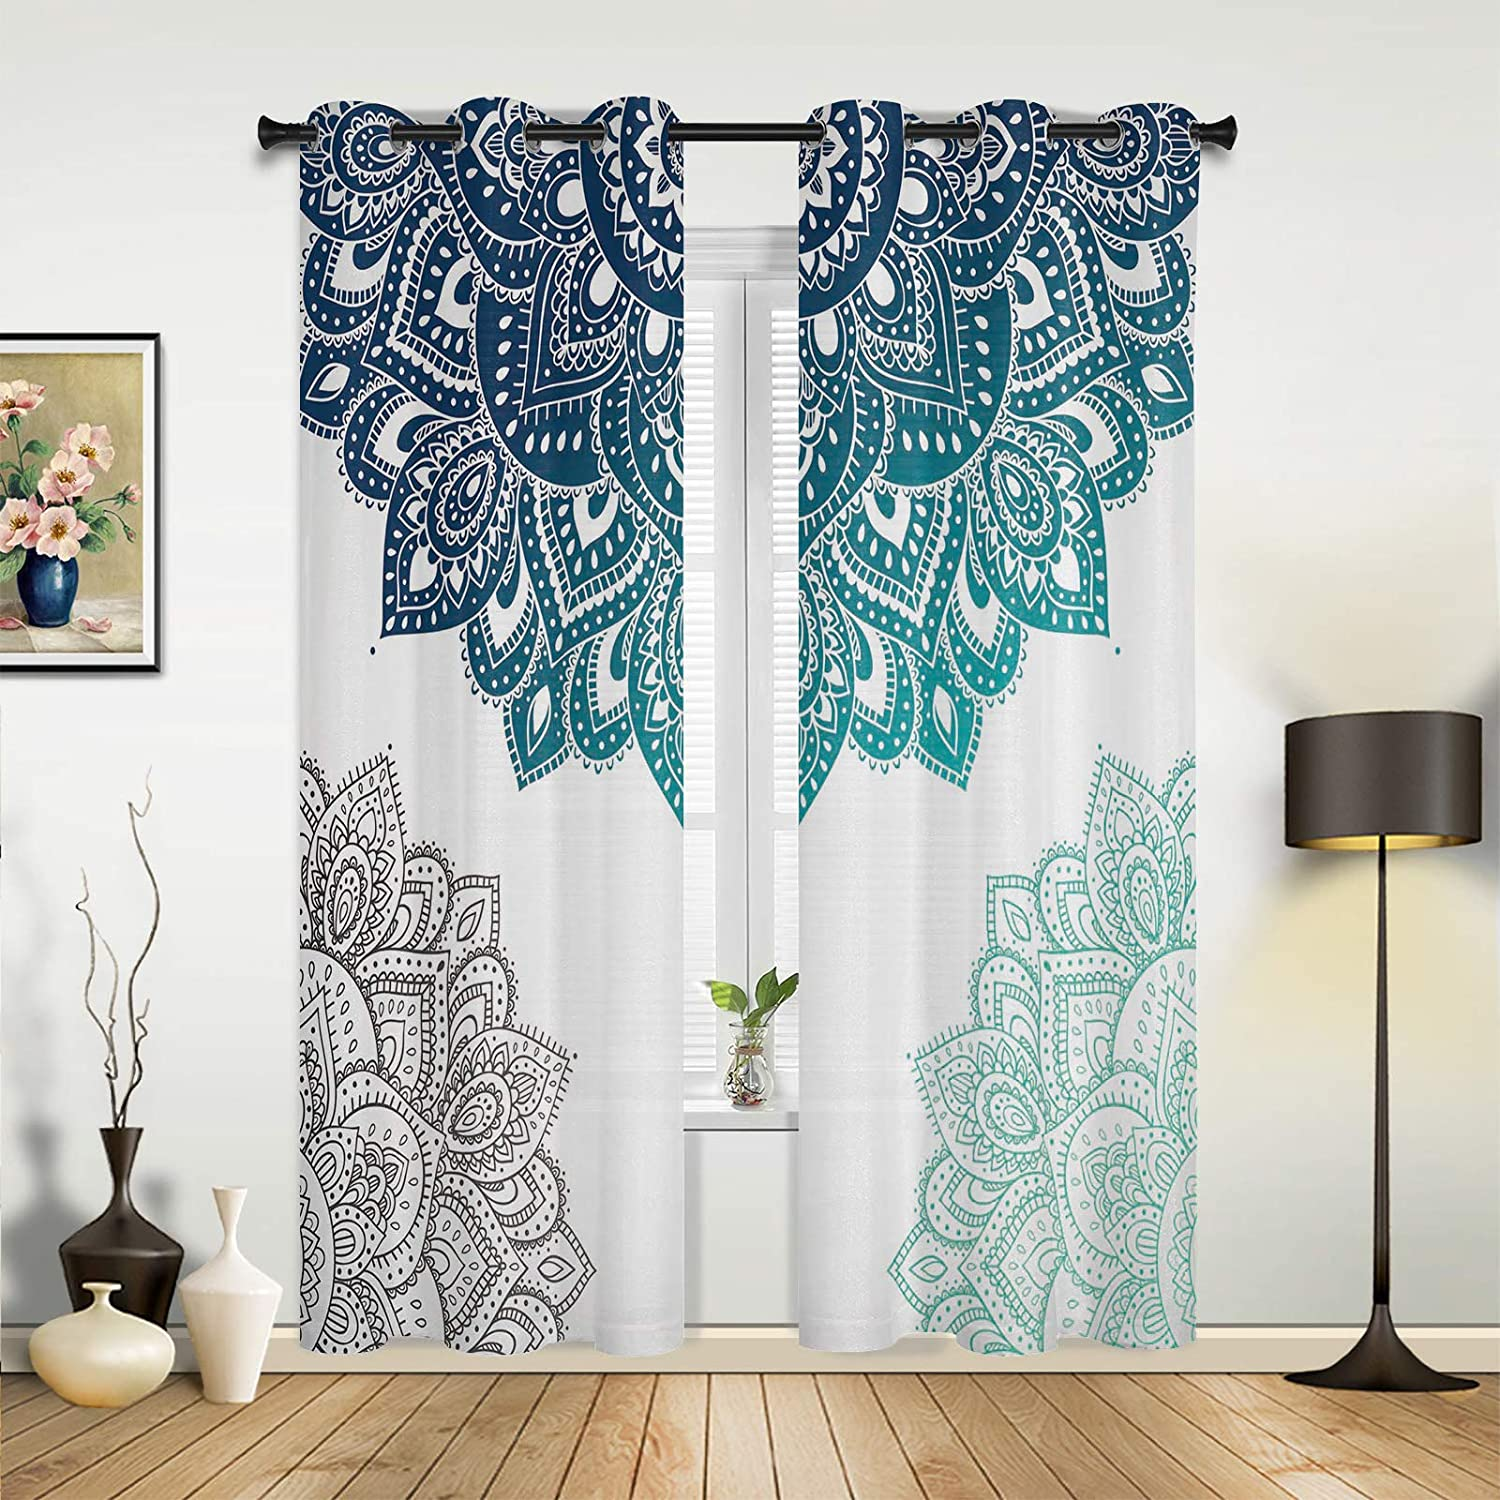 Window Curtains Drapes Panels Mandala Pattern Superior Three-Color Gradie In a popularity